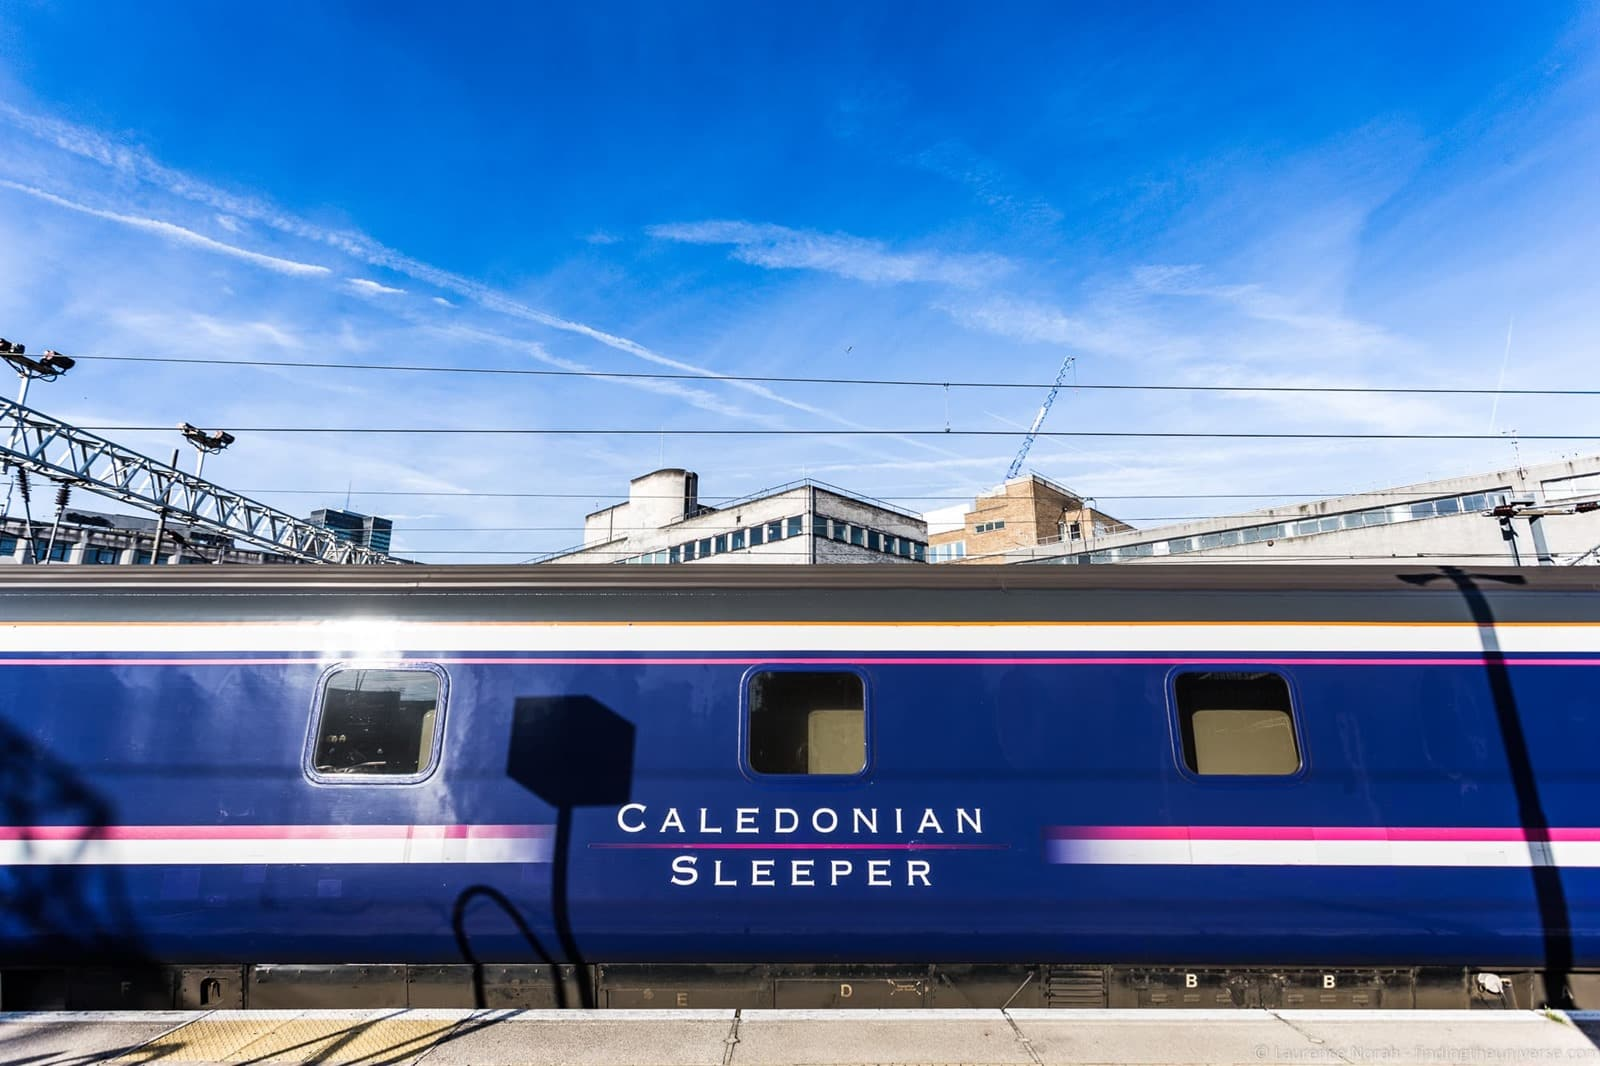 [Caledonian+Sleeper_by_Laurence+Norah-3%5B4%5D]